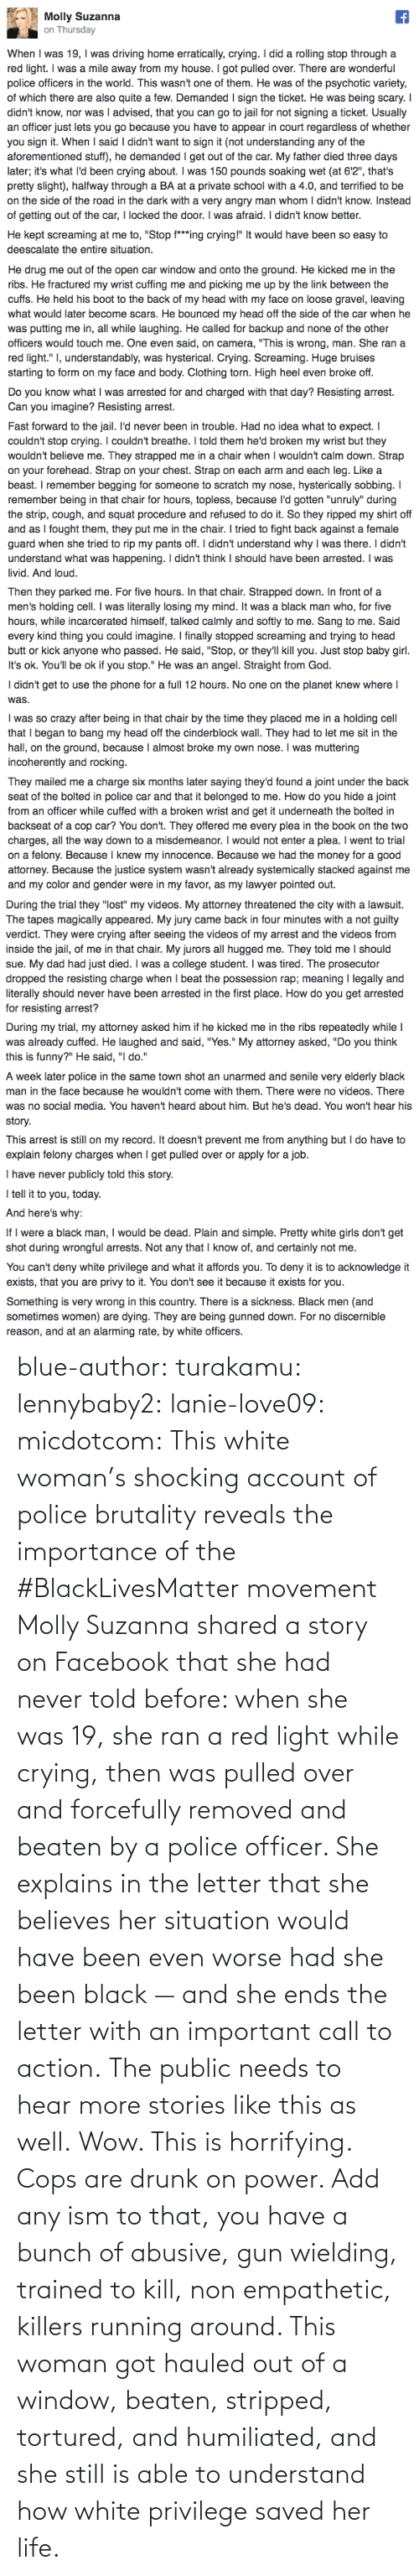 gun: blue-author: turakamu:  lennybaby2:  lanie-love09:  micdotcom:  This white woman's shocking account of police brutality reveals the importance of the #BlackLivesMatter movement Molly Suzanna shared a story on Facebook that she had never told before: when she was 19, she ran a red light while crying, then was pulled over and forcefully removed and beaten by a police officer. She explains in the letter that she believes her situation would have been even worse had she been black — and she ends the letter with an important call to action.  The public needs to hear more stories like this as well.  Wow. This is horrifying.  Cops are drunk on power. Add any ism to that, you have a bunch of abusive, gun wielding, trained to kill, non empathetic, killers running around.    This woman got hauled out of a window, beaten, stripped, tortured, and humiliated, and she still is able to understand how white privilege saved her life.